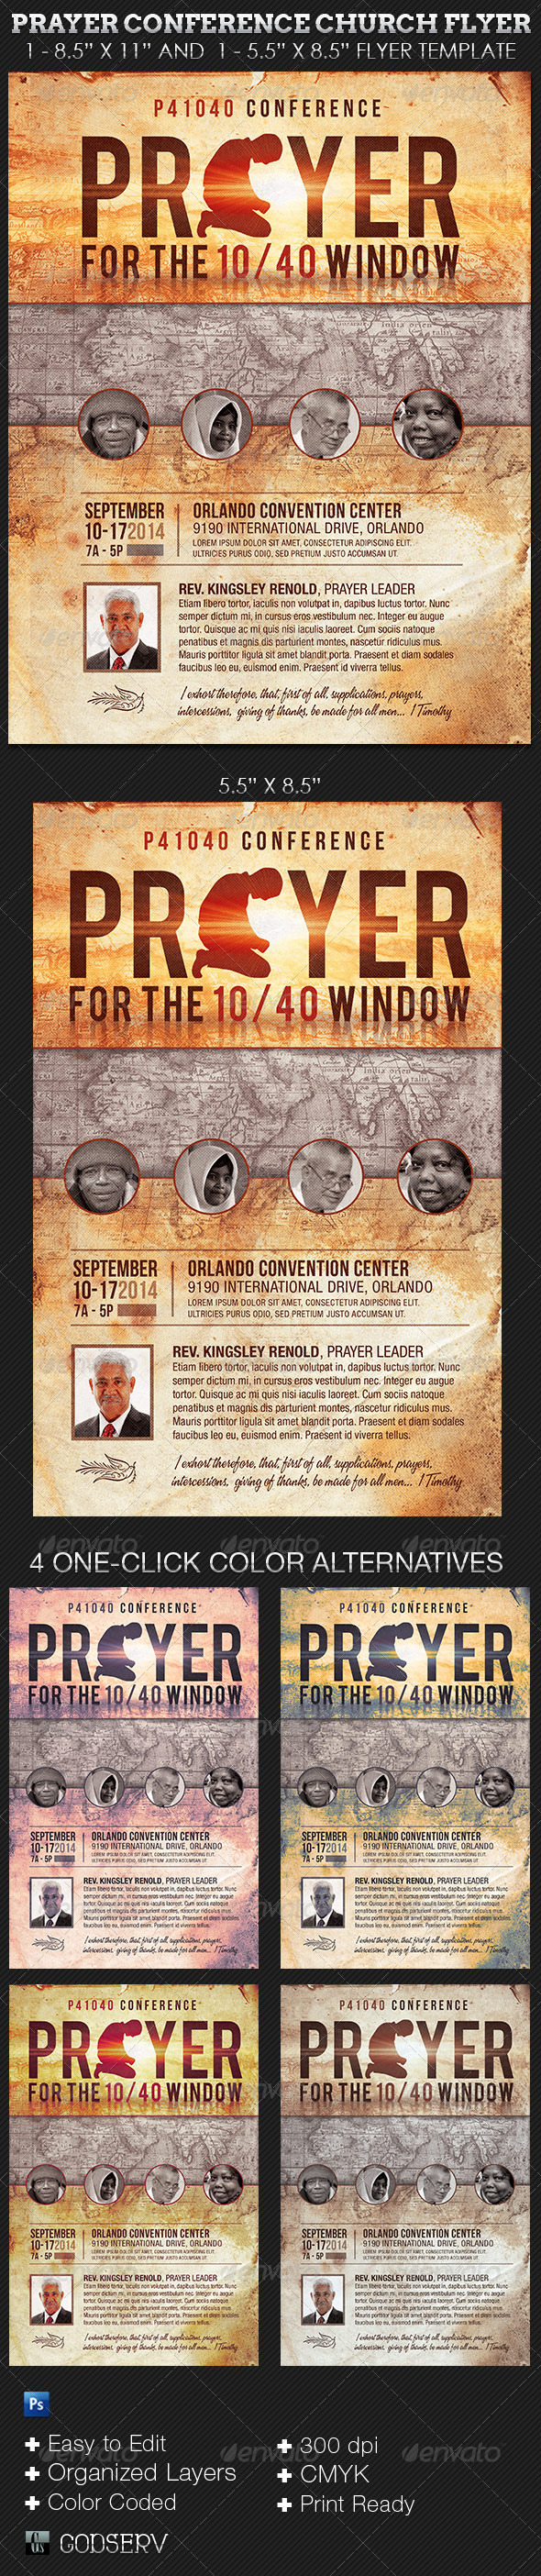 GraphicRiver Prayer Conference Church Flyer Template 5669557